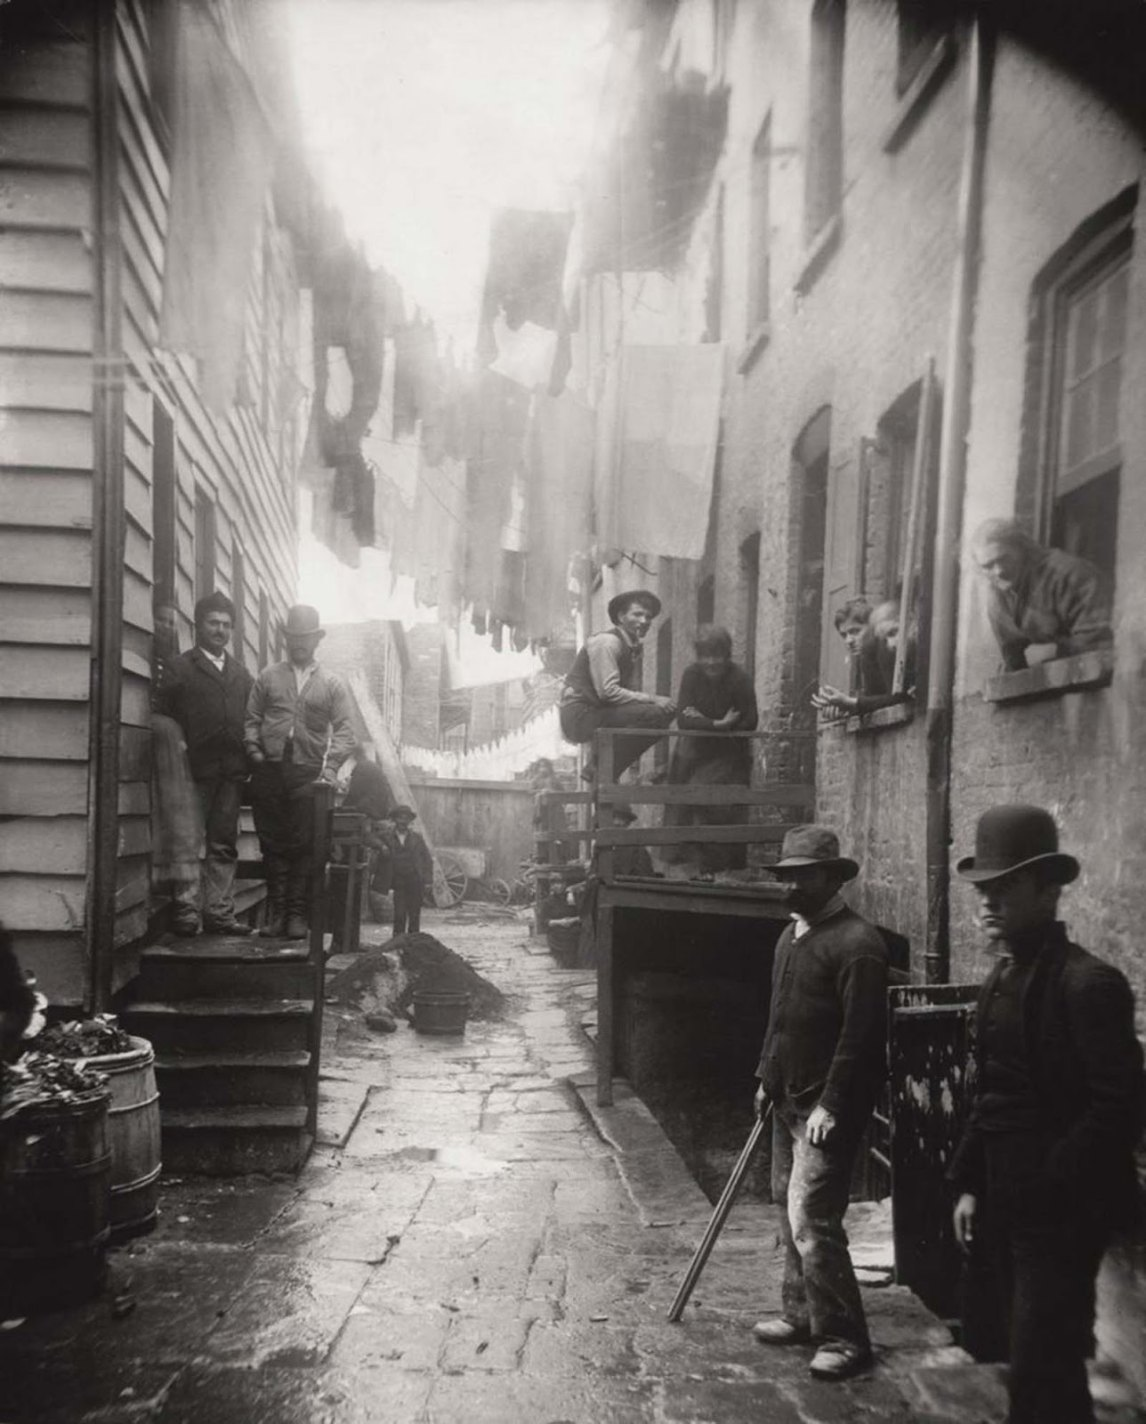 Bandit's Roost, 59½ Mulberry Street, Jacob Riis, 1888